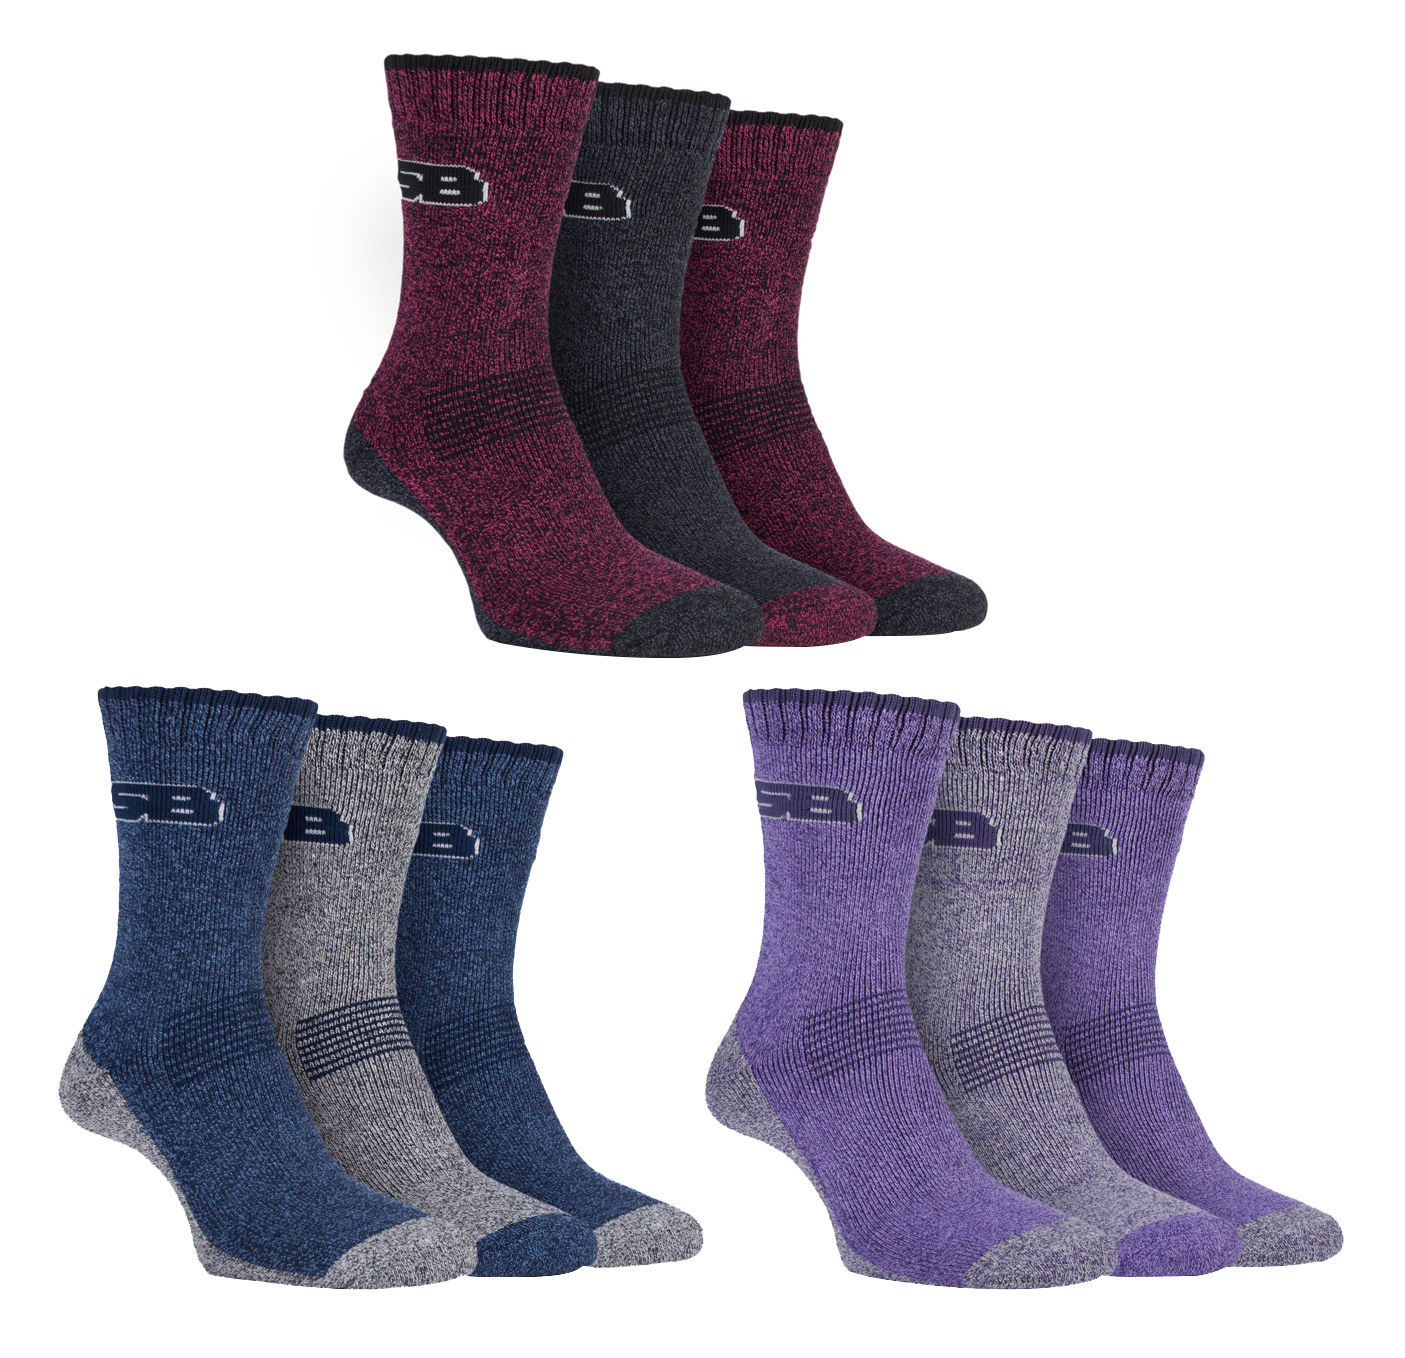 Storm Bloc - 3 Pack Womens Cushioned Lightweight Hiking Walking Socks for Summer